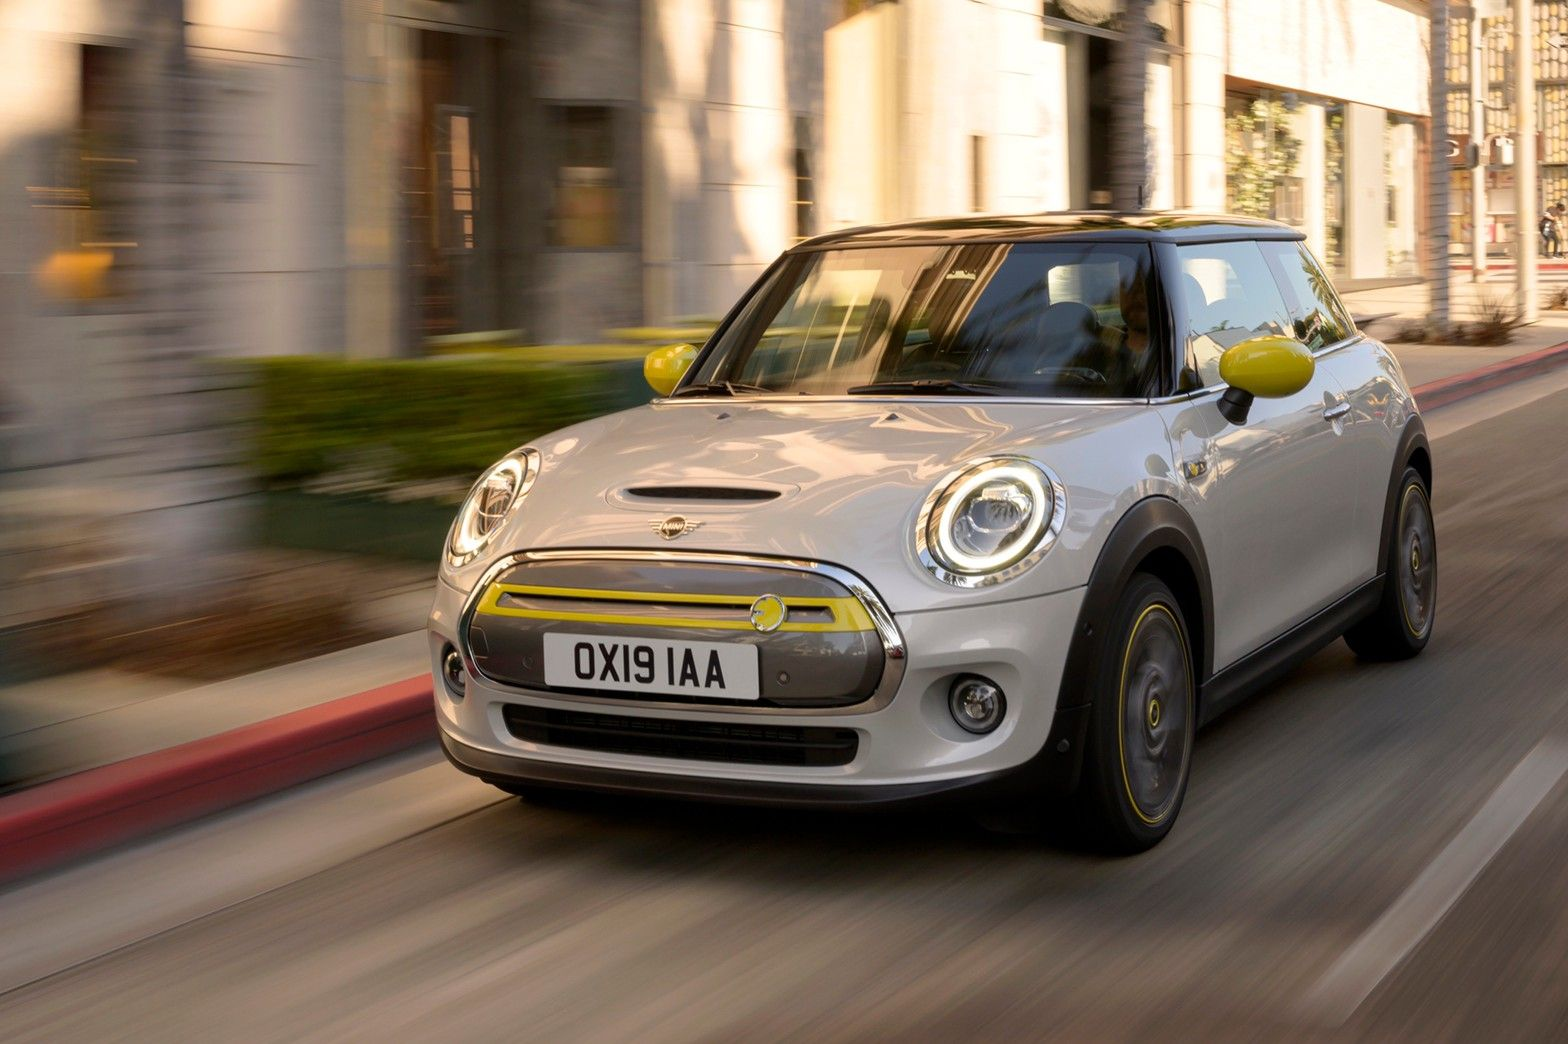 Photo: Courtesy of Mini Cooper